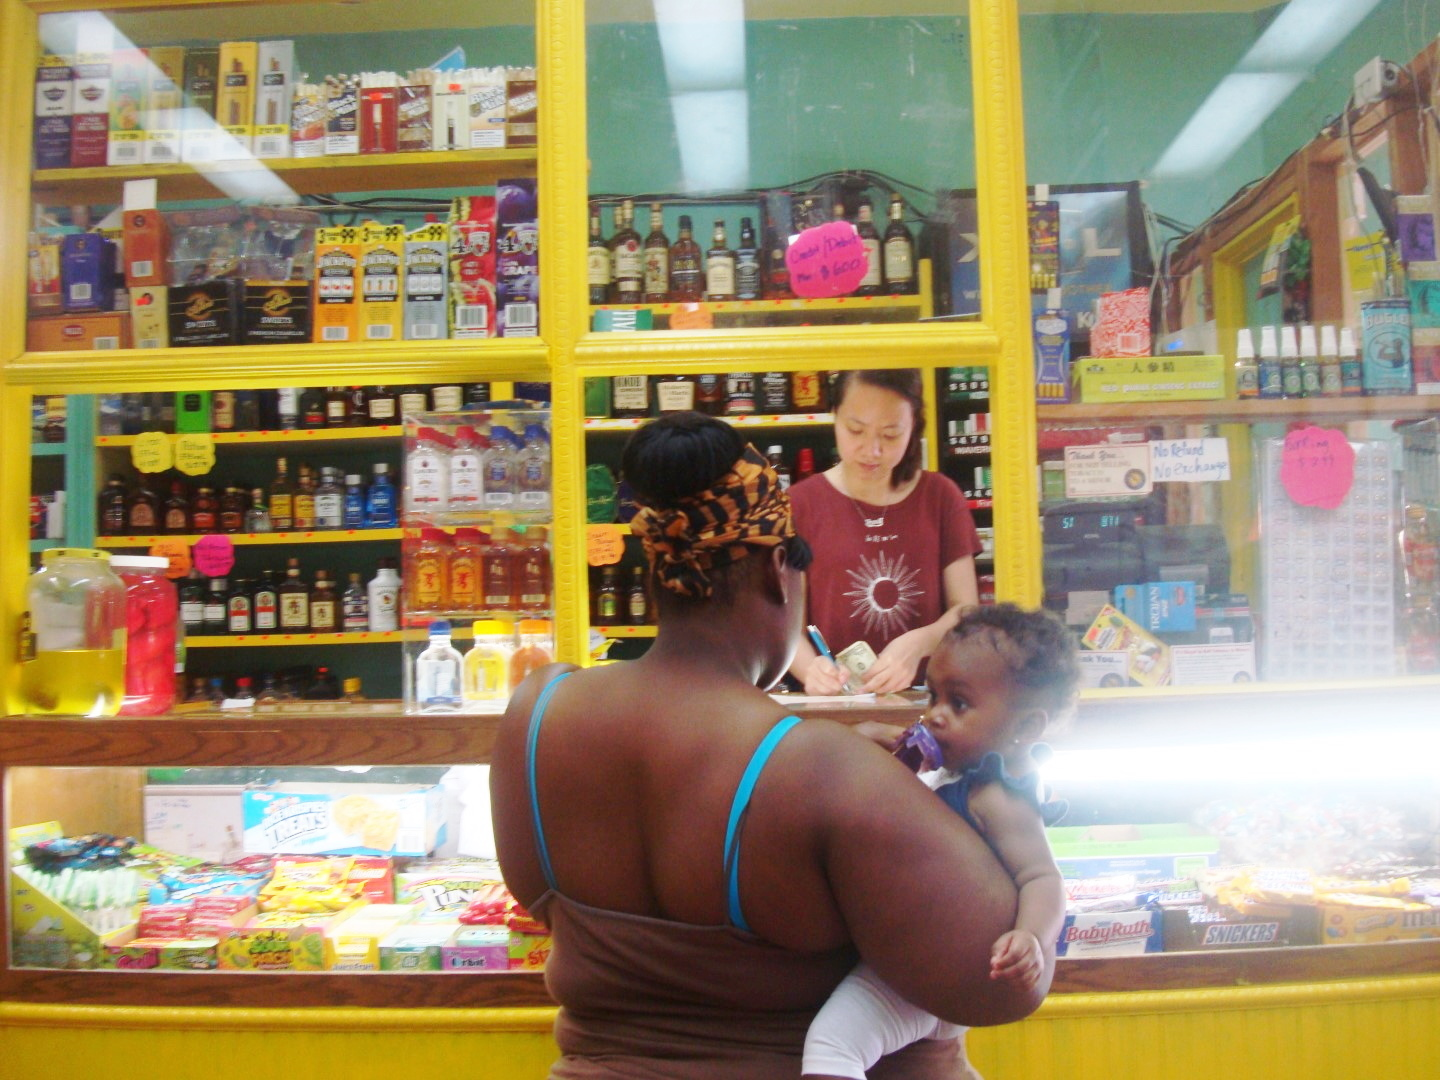 Nikki Food Store In New Orleans 9th Ward